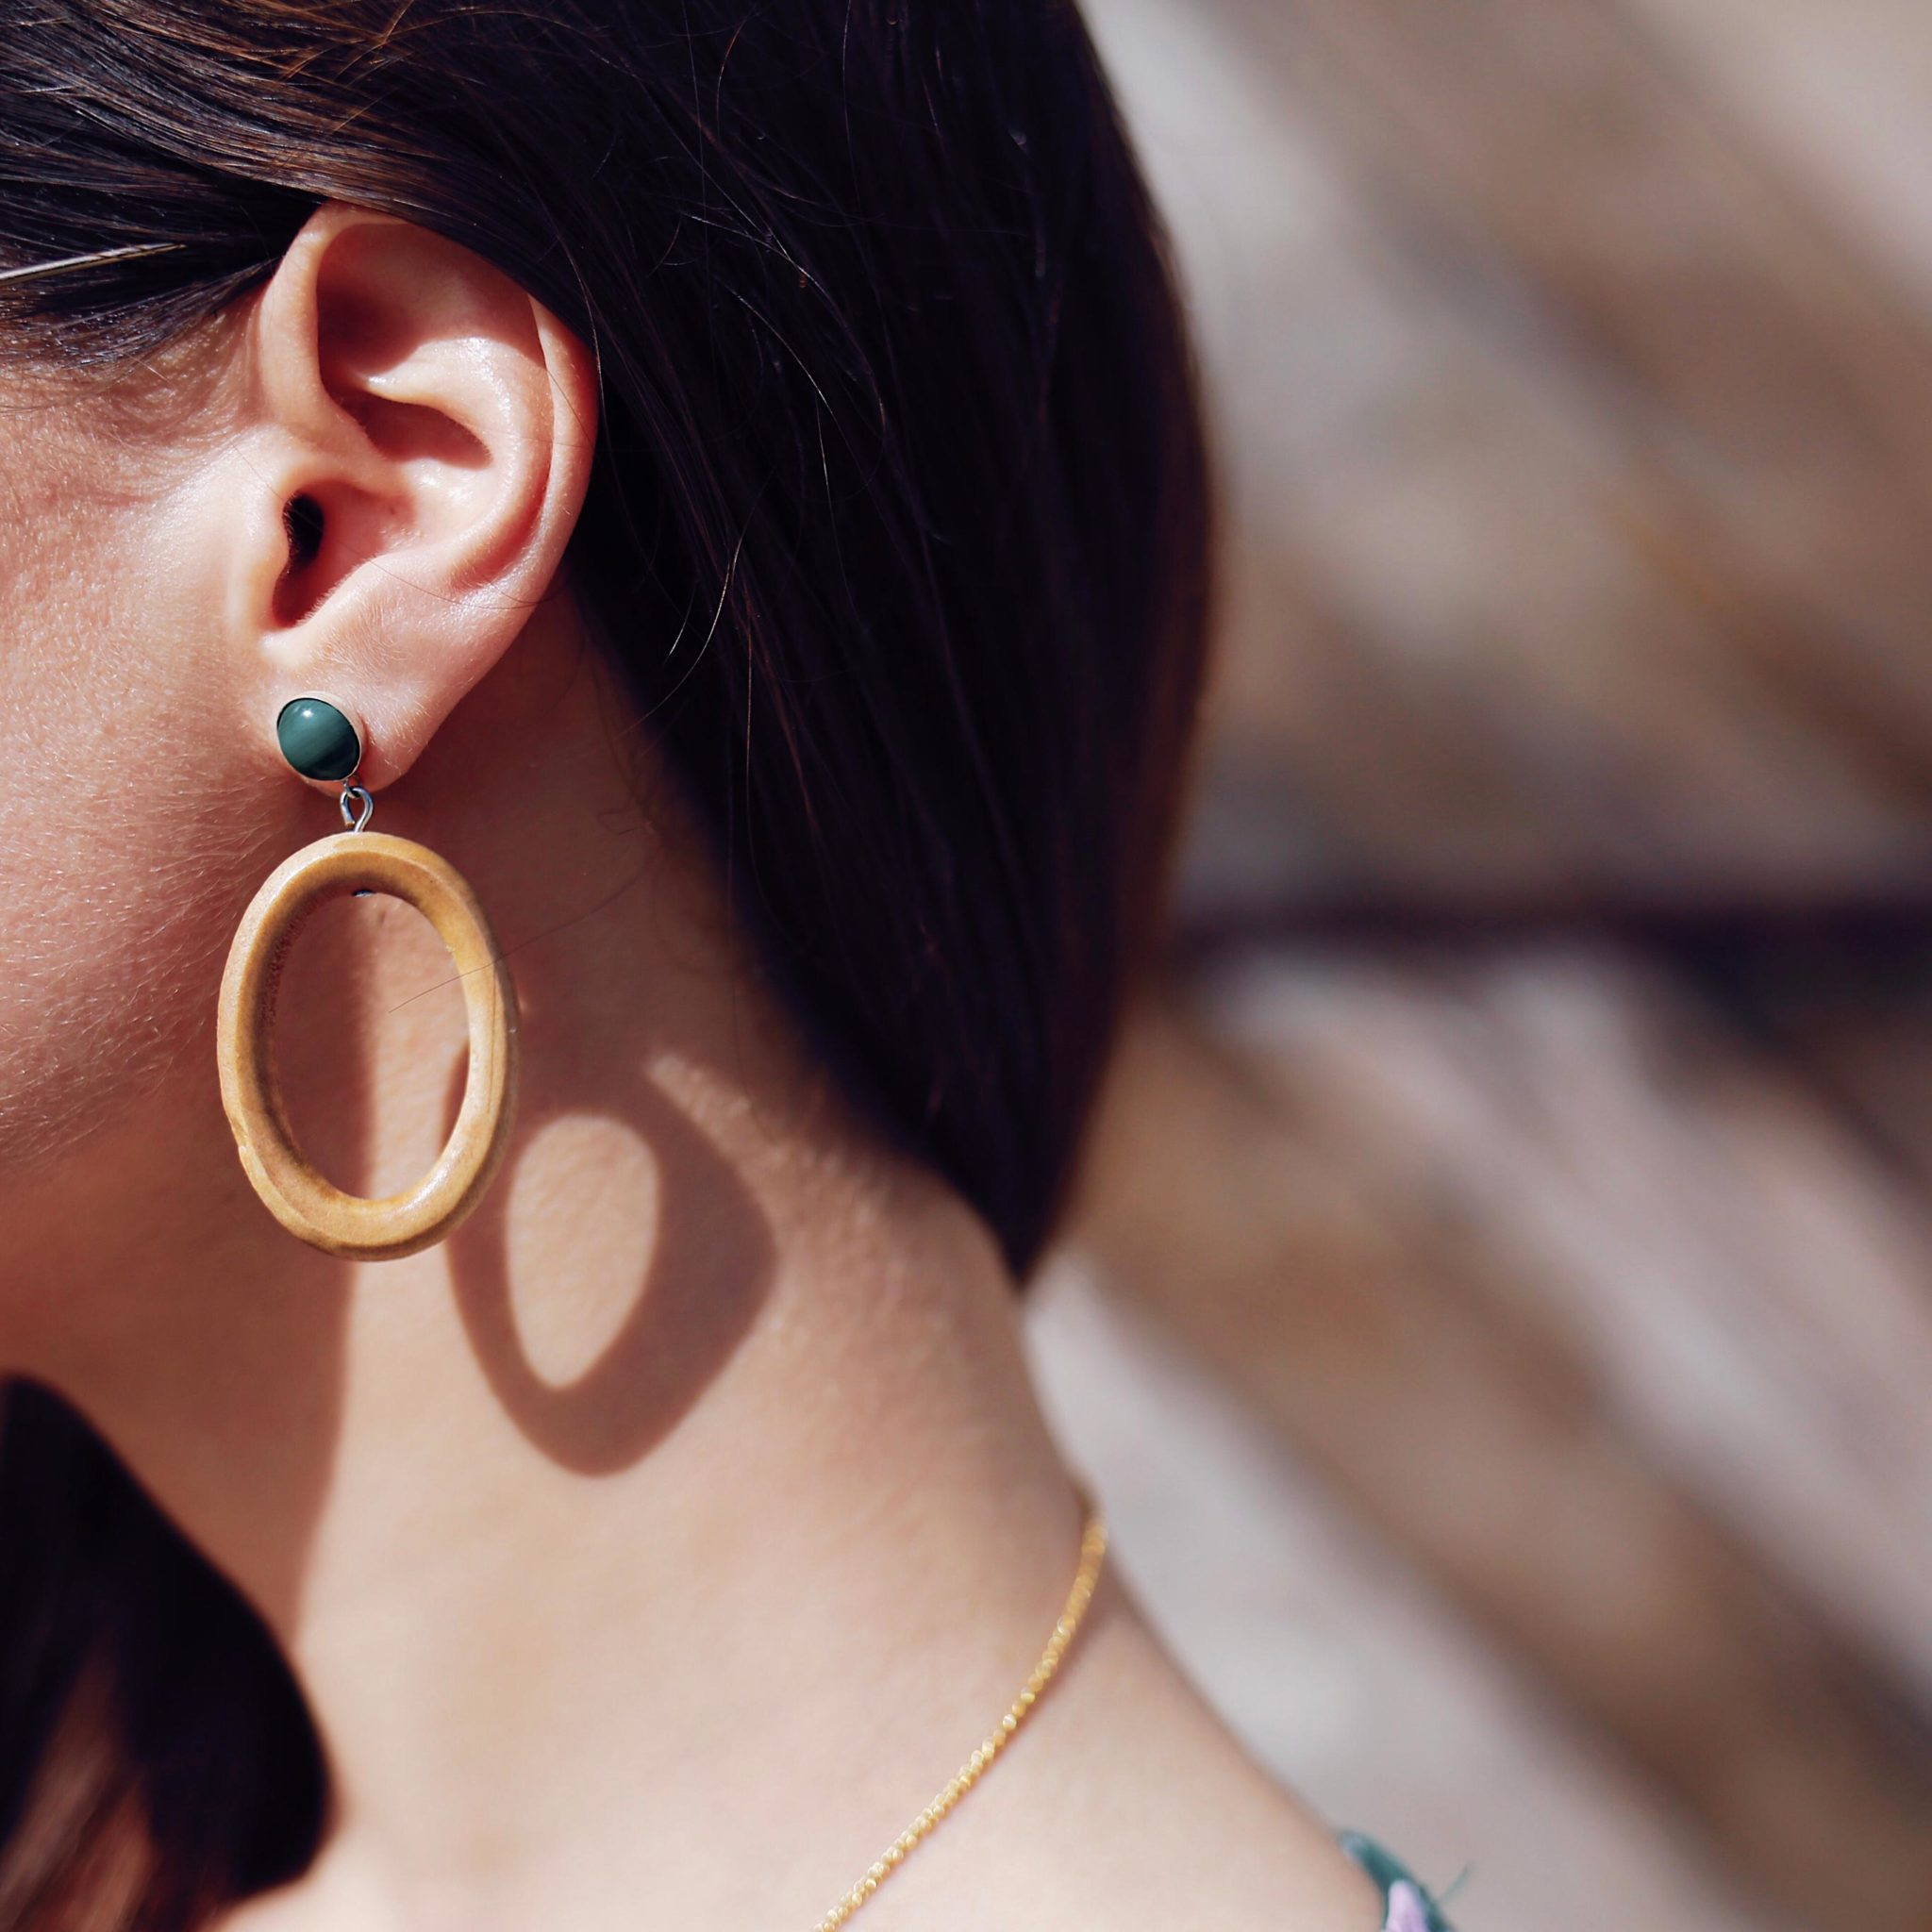 Best statement earrings 2018: wood hoop earrings Sophie Monet - Made in Venice - More on Houseofcomil.com. Fashion Blogger Julia Comil has curated the best statement earrings for 2018